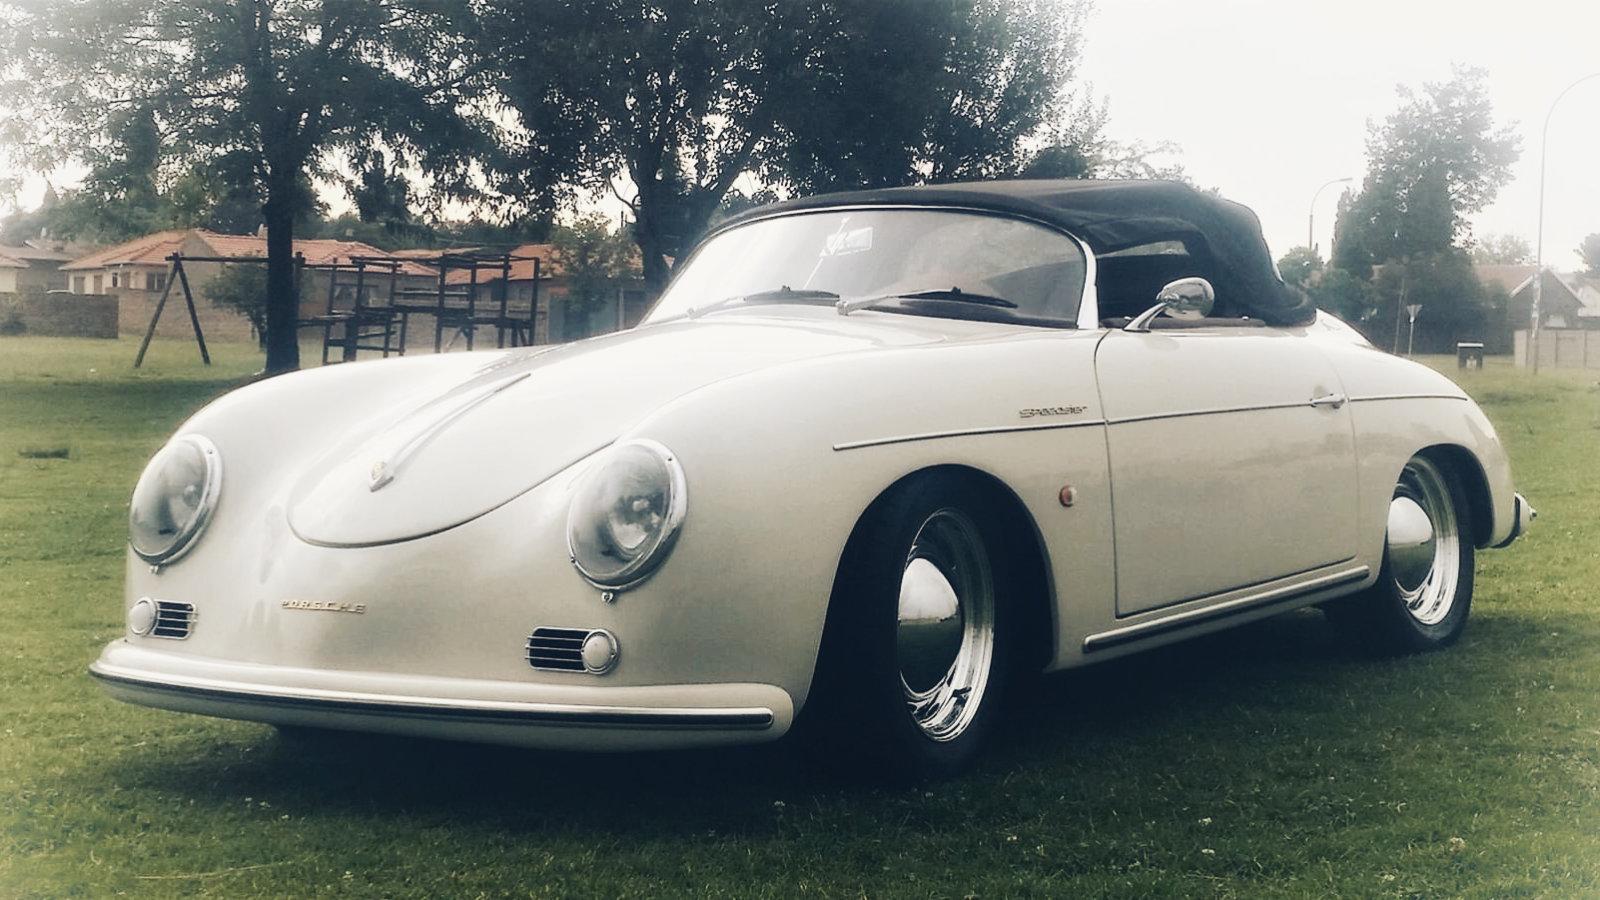 Universal Products 356 Speedster